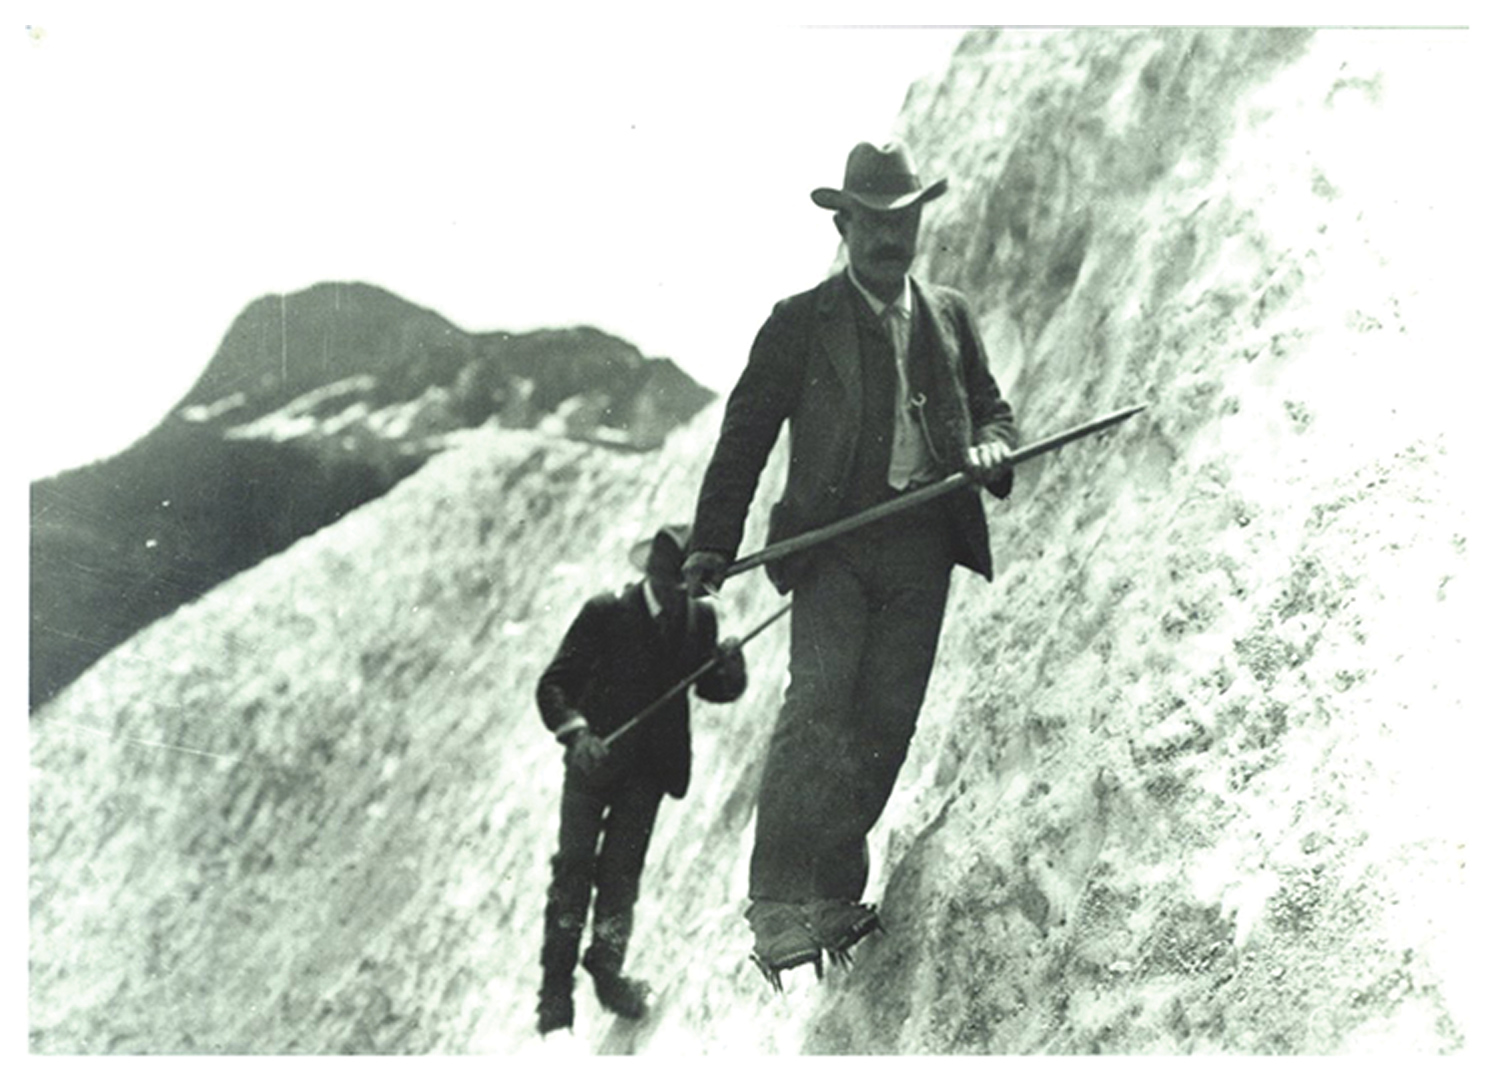 Picture of some of the first ice climbing crampons, two men standing on an ice wall using crampons holding ice axes